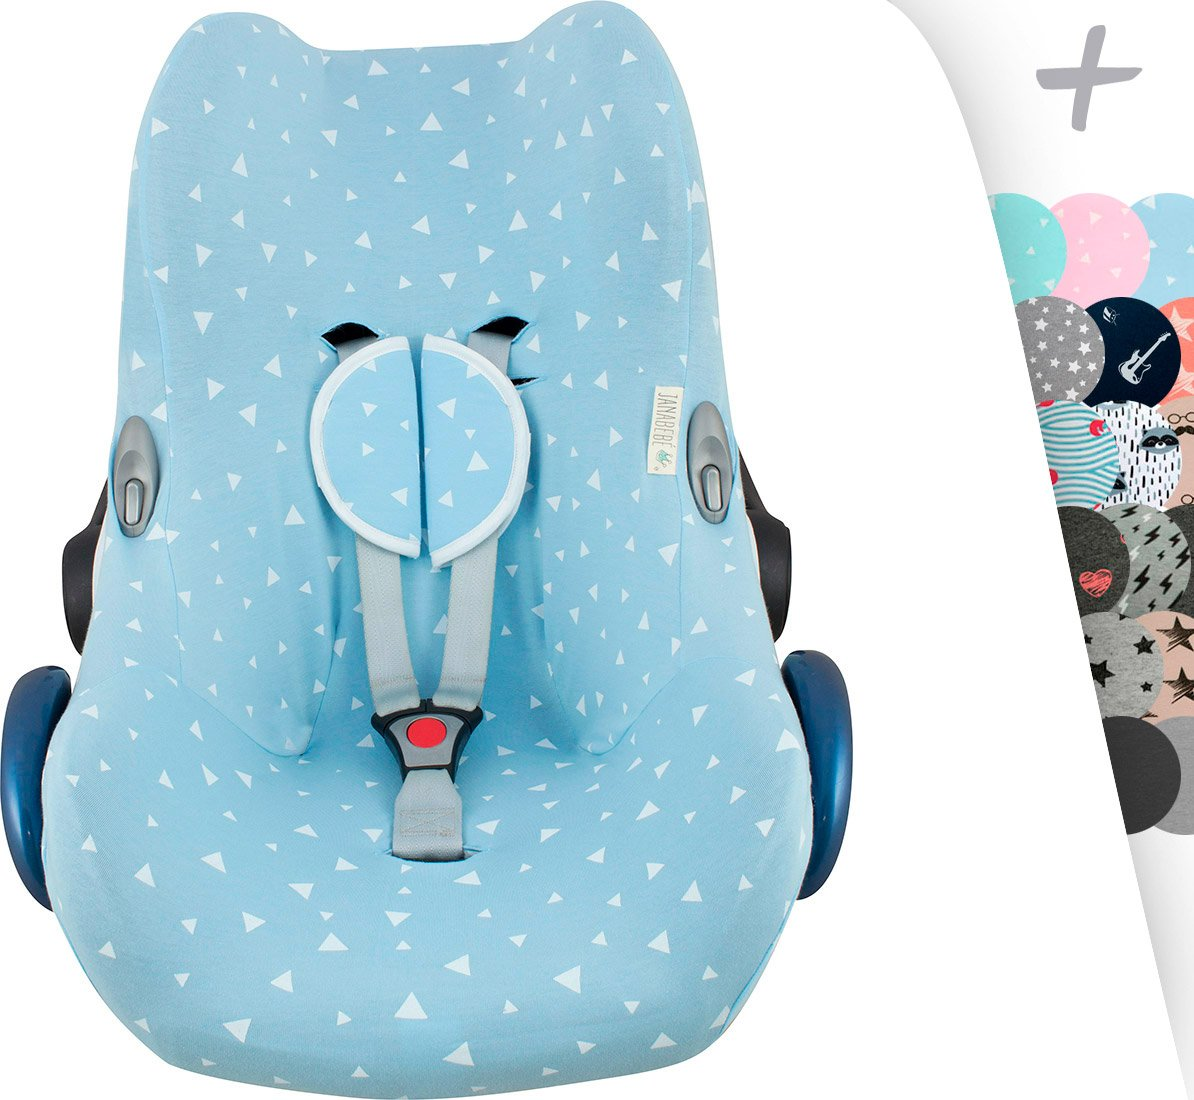 Maxi-COSI Cover Liner for Cabriofix, Citi, Streety Fix, Jané Koos by Janabebe + Harness Protection Pads (Rock Hero) 618